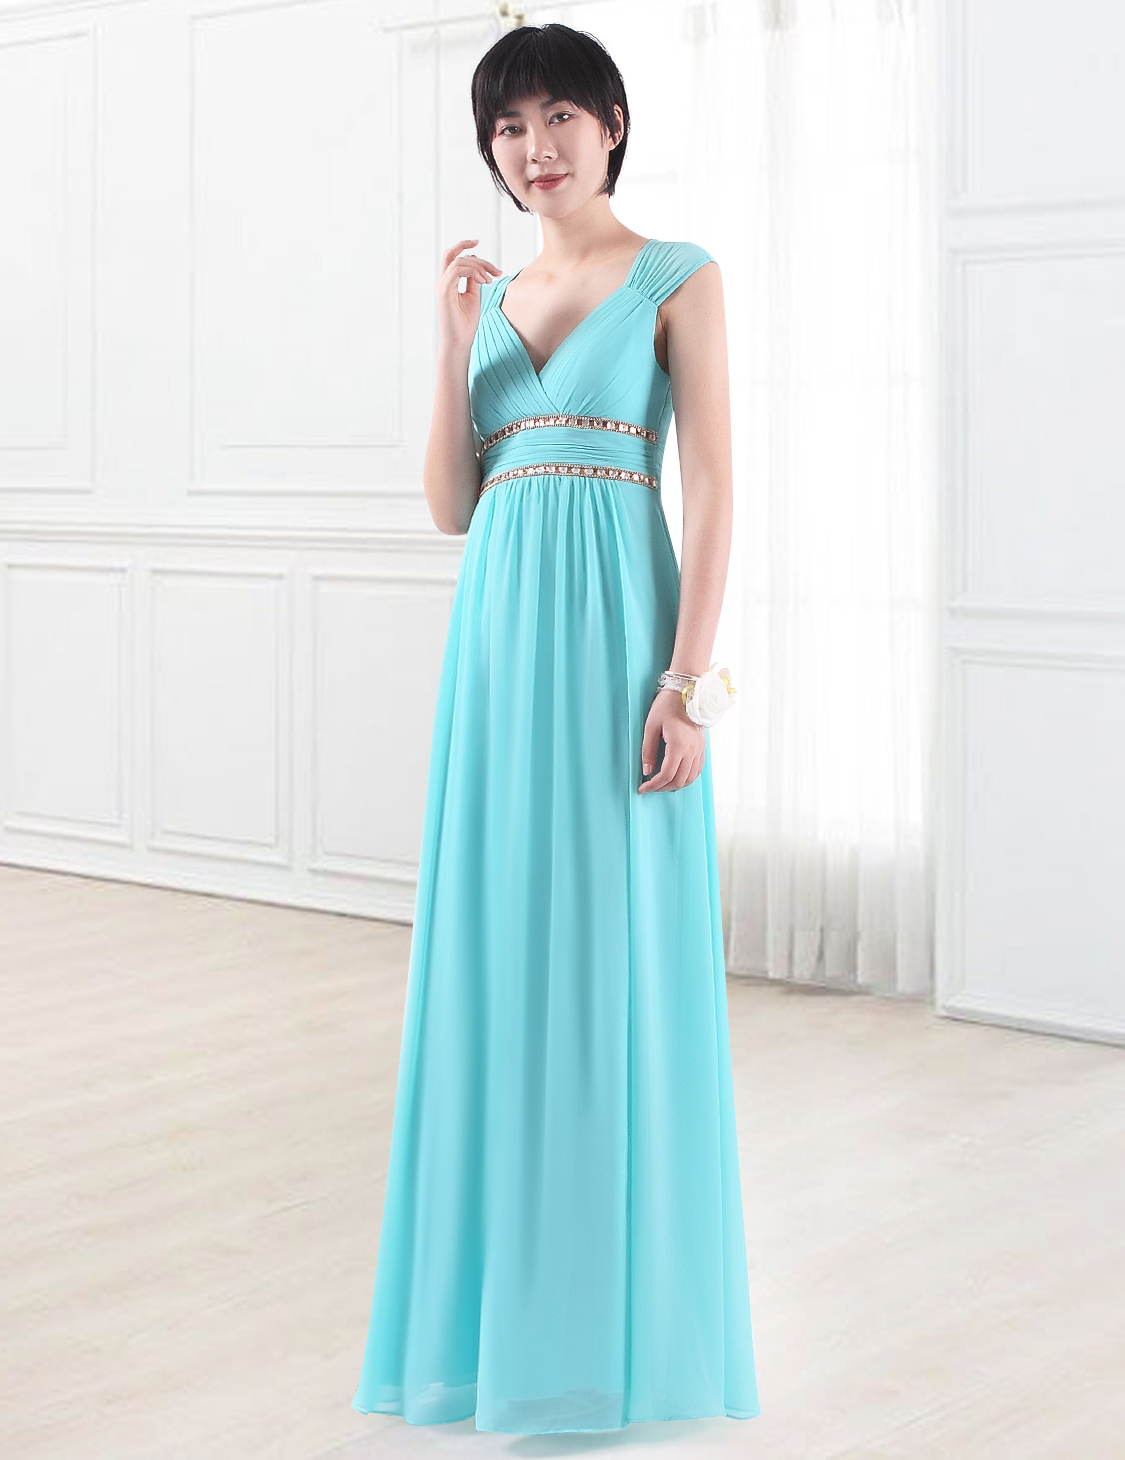 Evening Prom Dress Beaded Wedding Formal Bridesmaid Party Gown 08697 ...